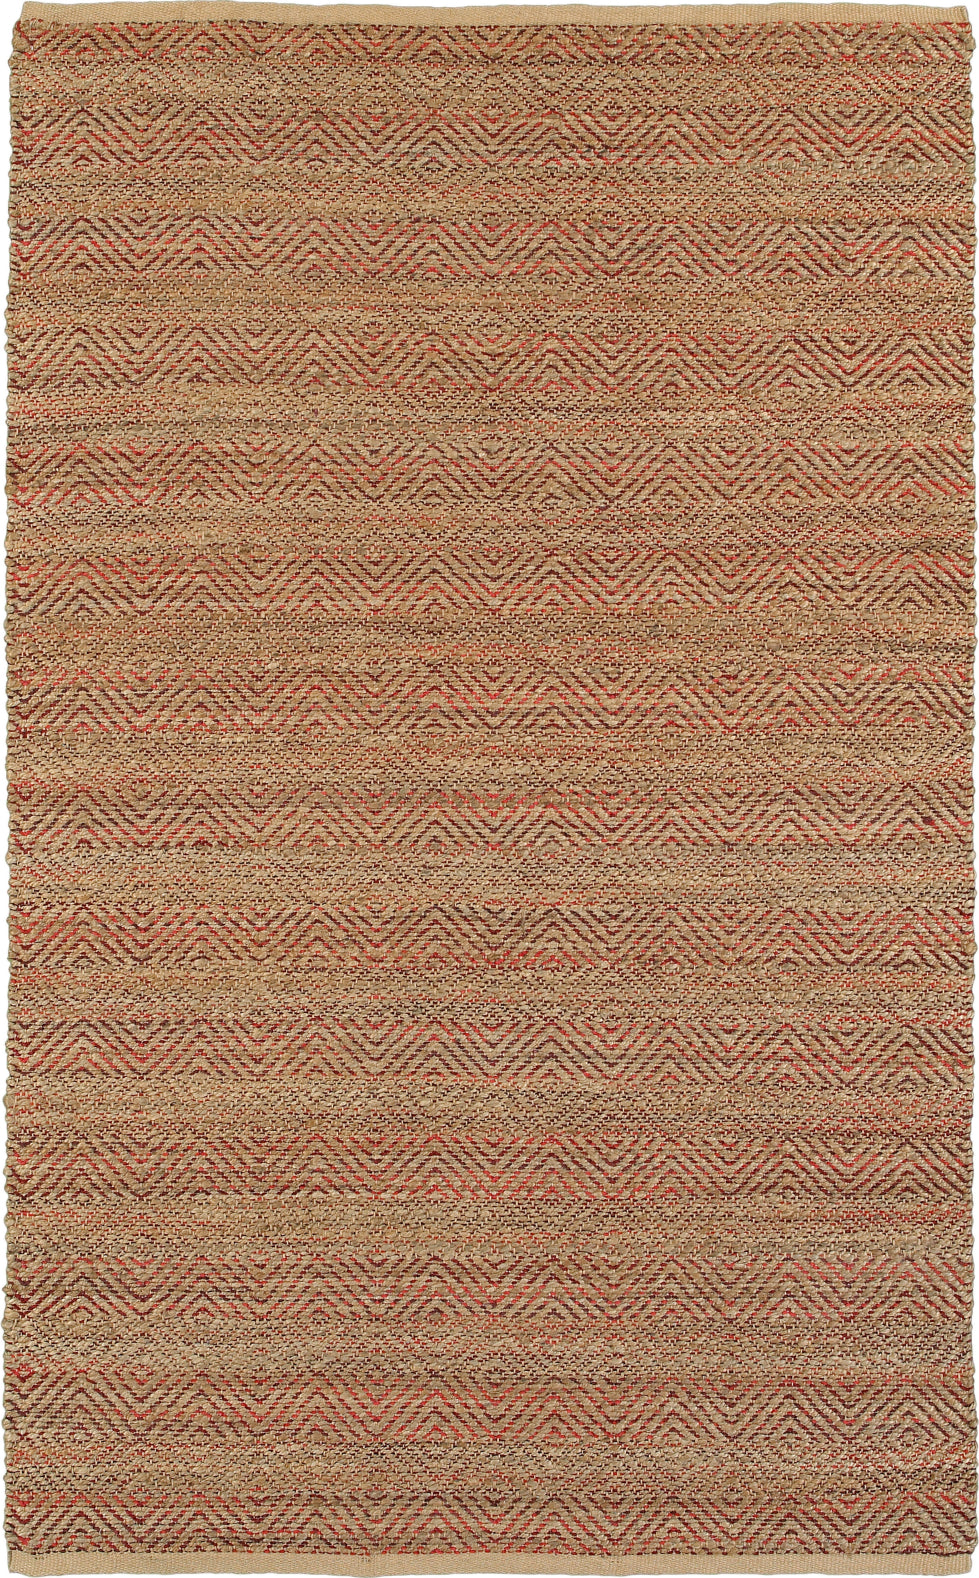 LR Resources Natural Fiber 3310 Burgundy Area Rug main image